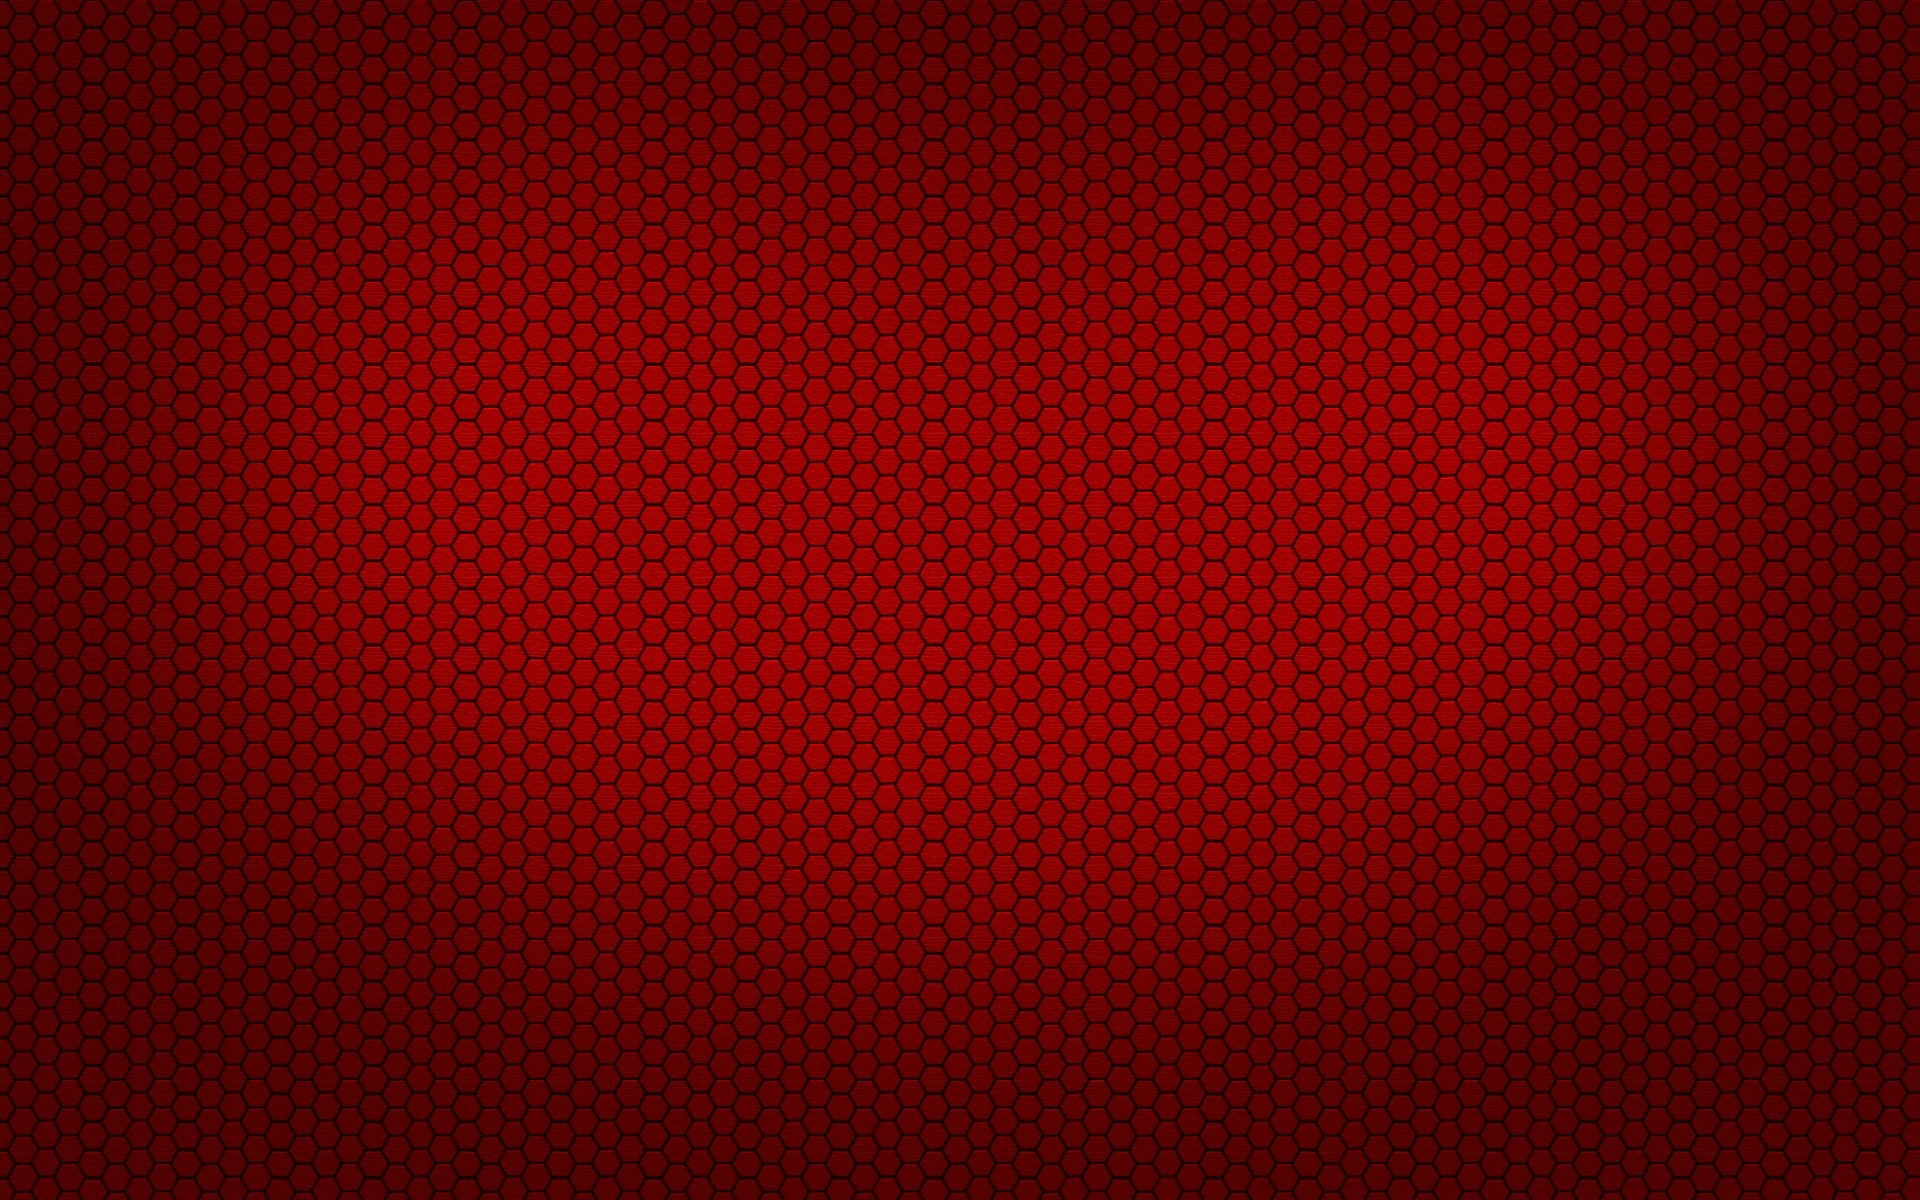 Plain Red Backgrounds